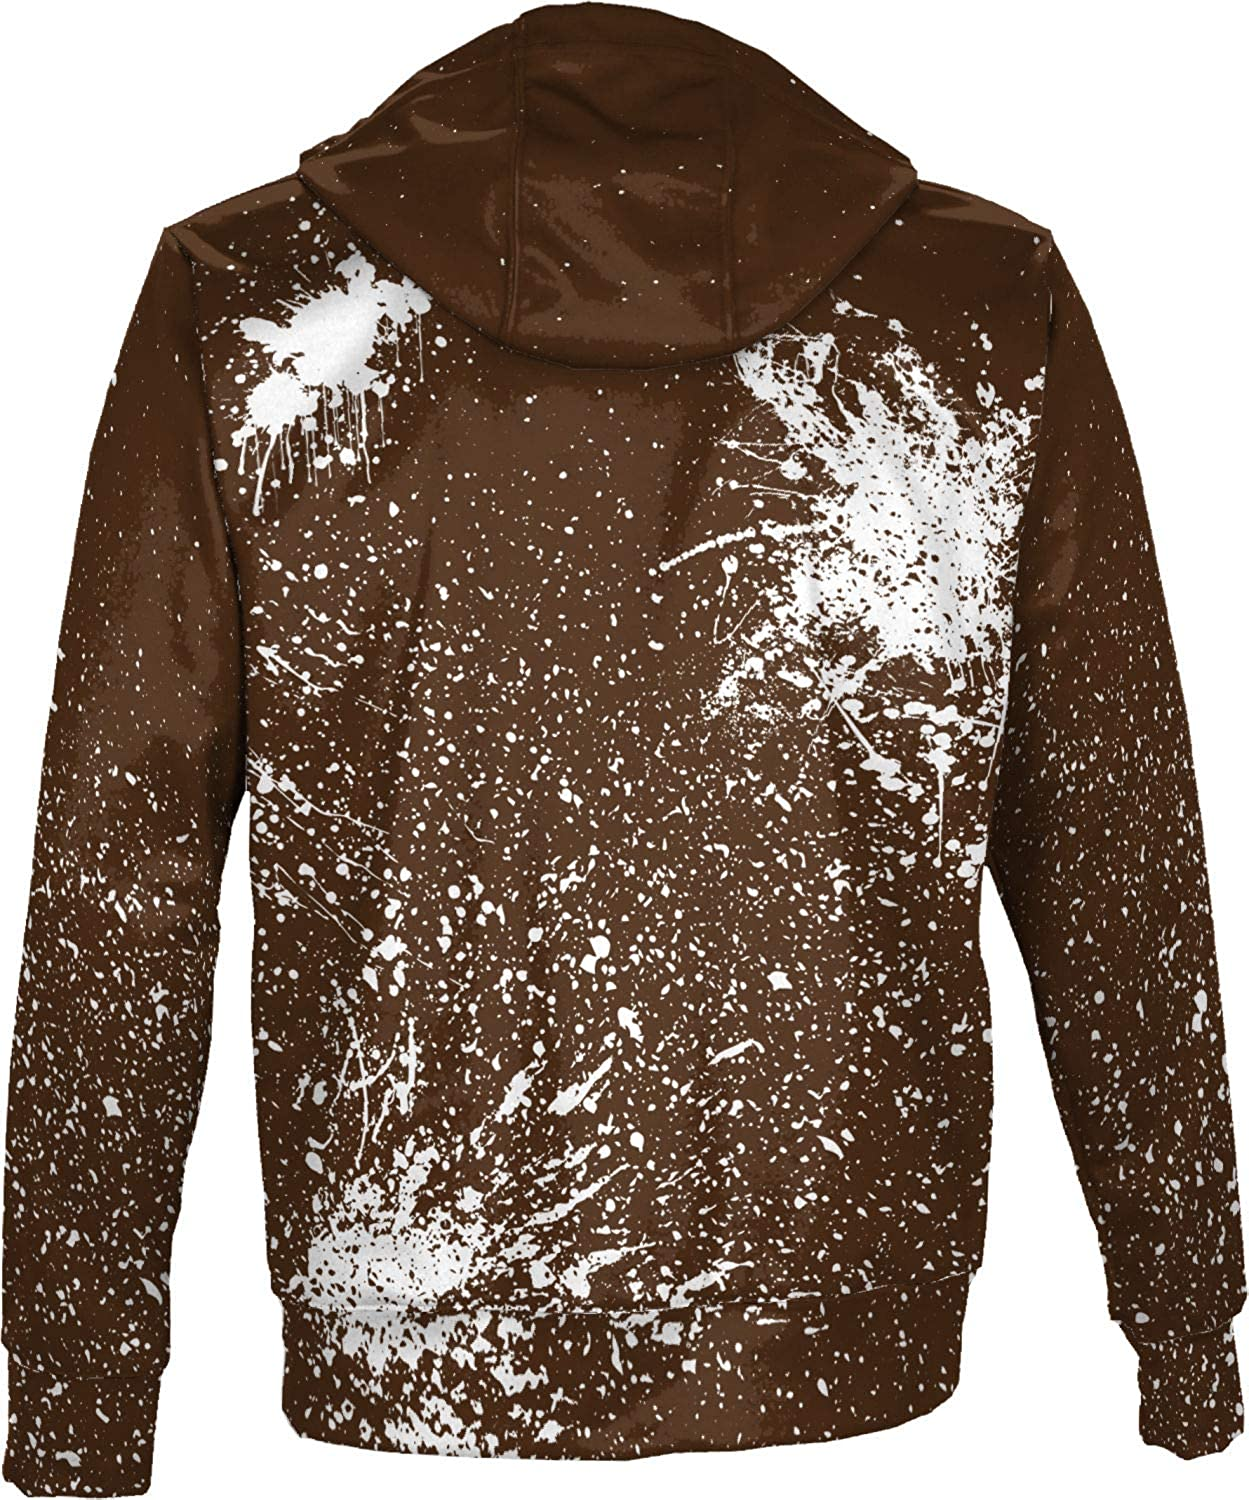 Splatter ProSphere Brown University Boys Pullover Hoodie